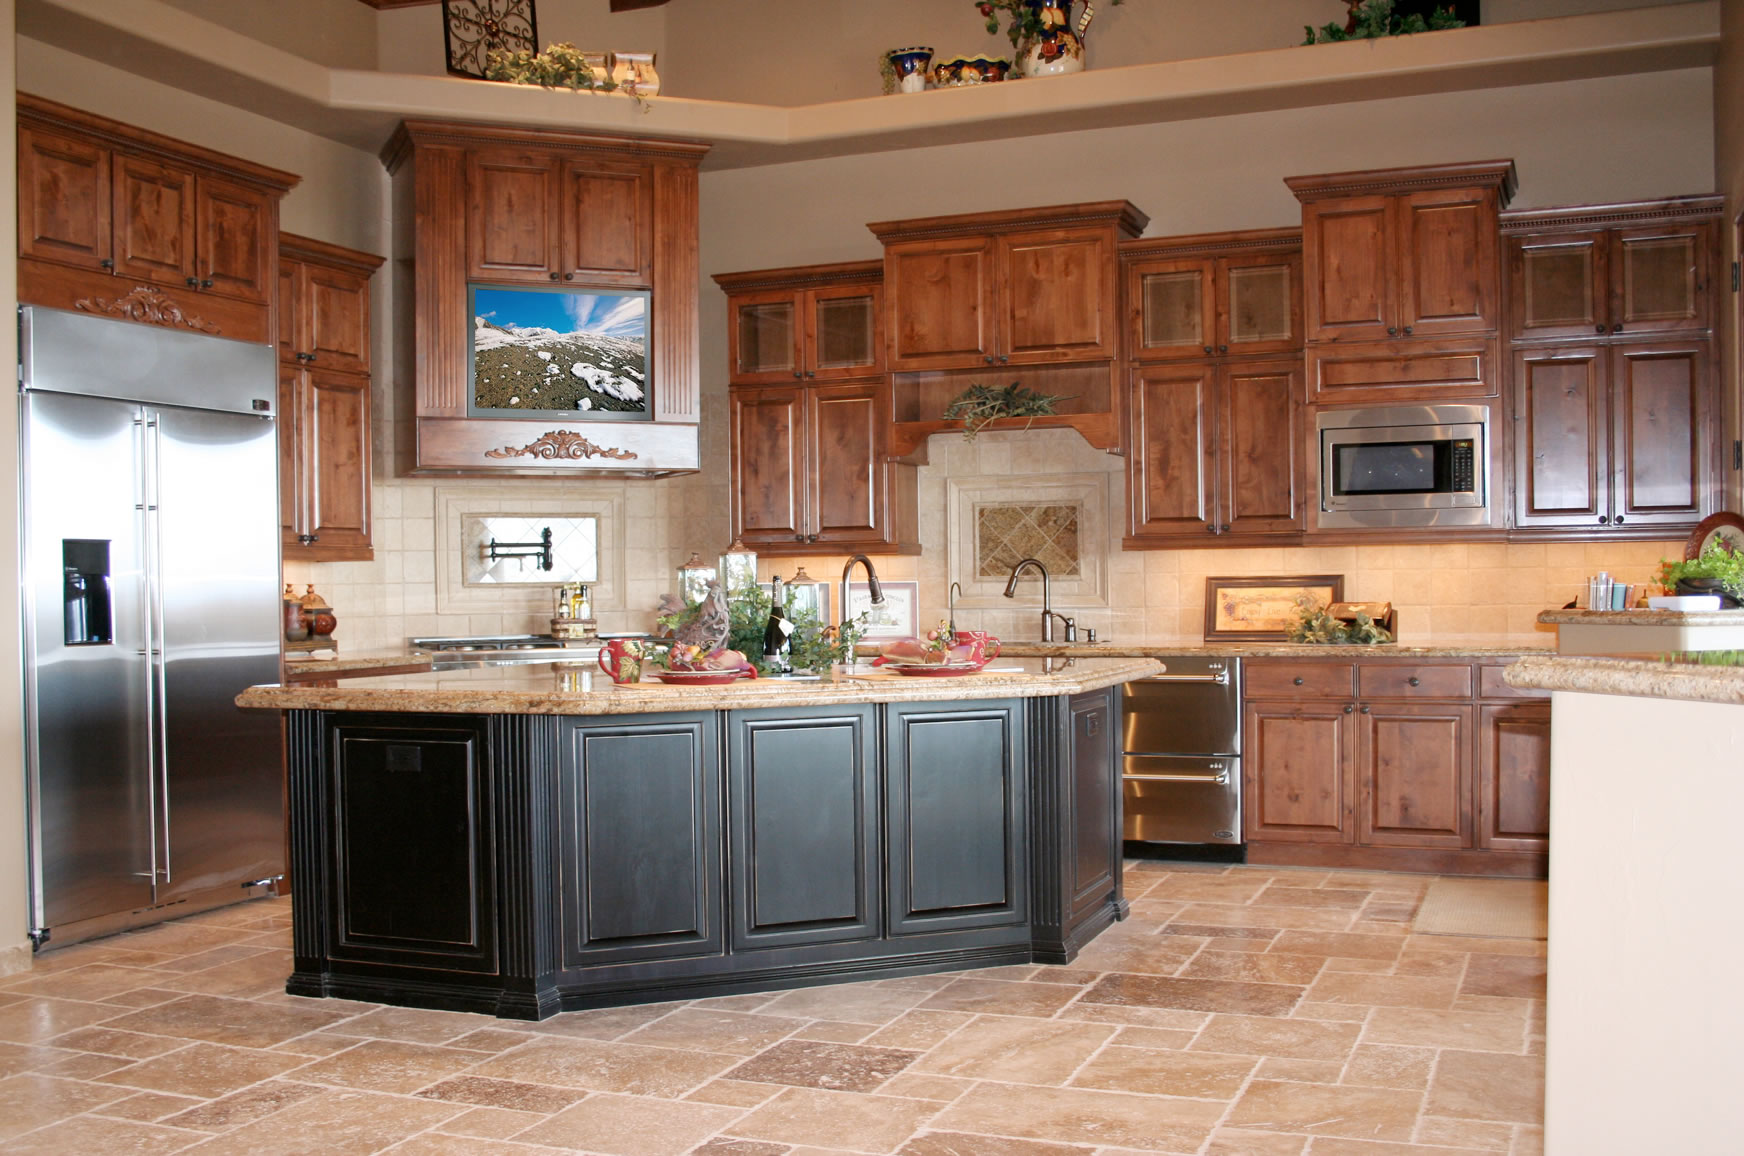 Kitchen image kitchen bathroom design center for Kitchen cabinets ideas pictures